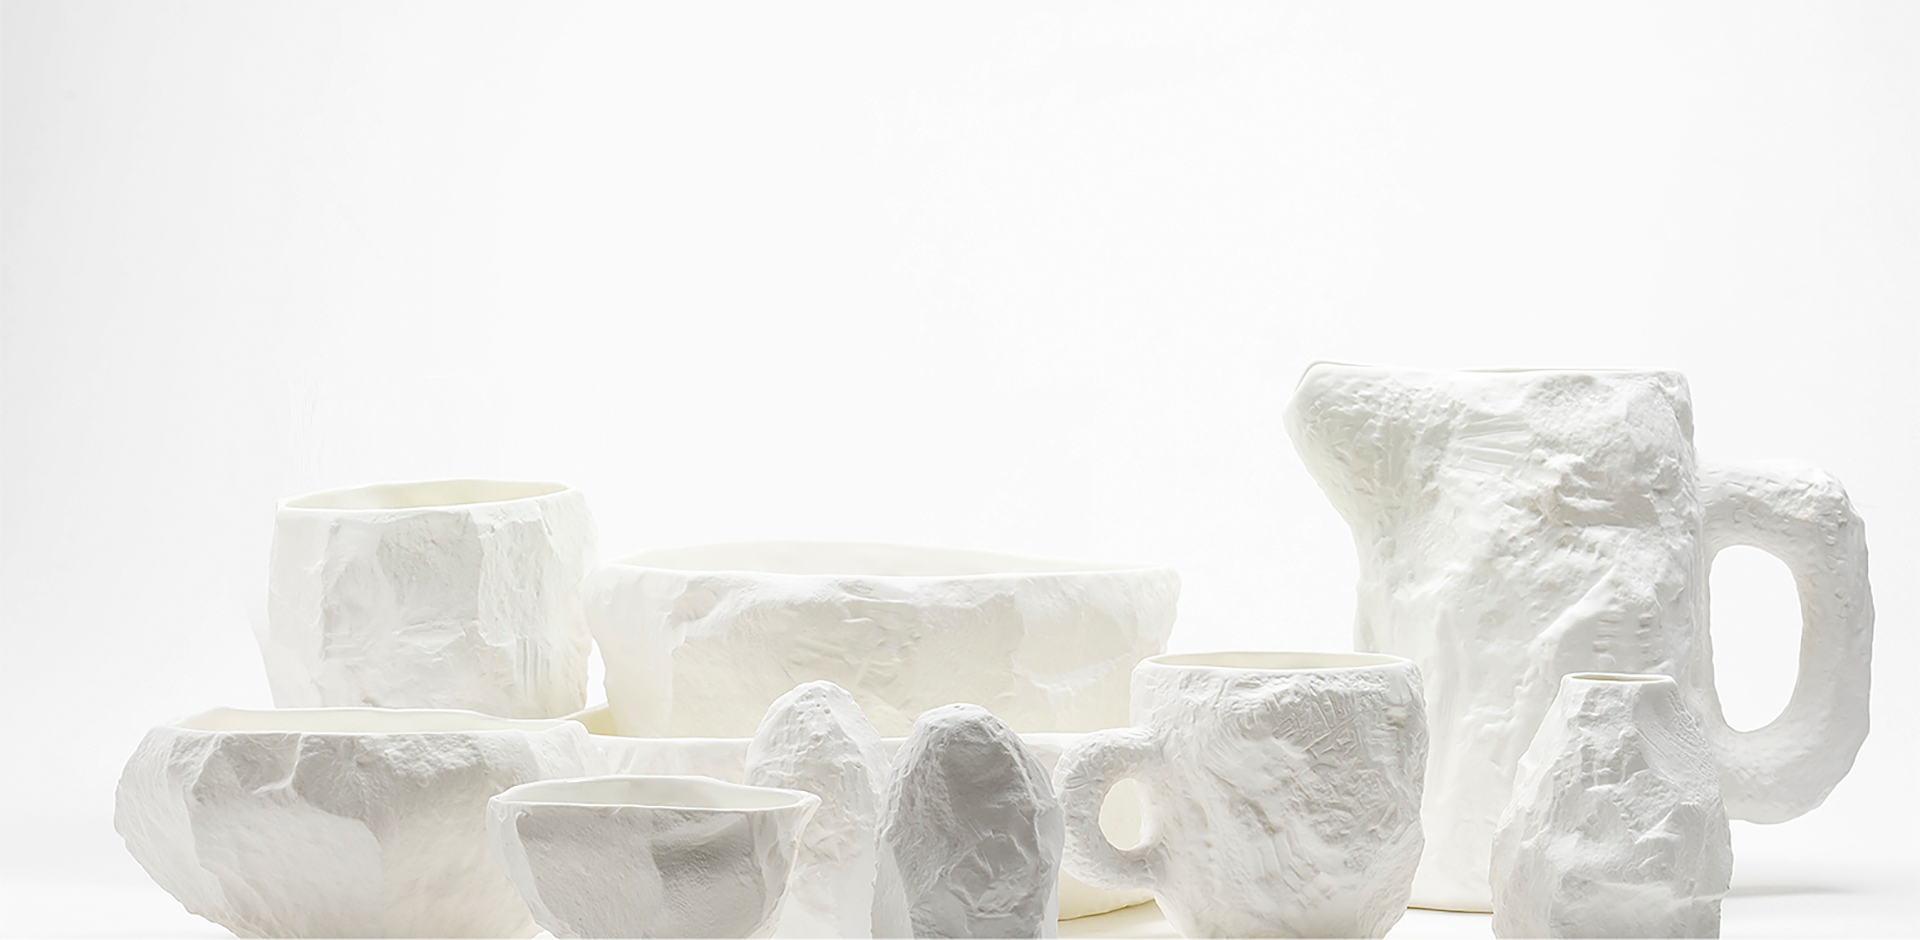 Crockery White Collection with Max Lamb | 1882 Ltd.